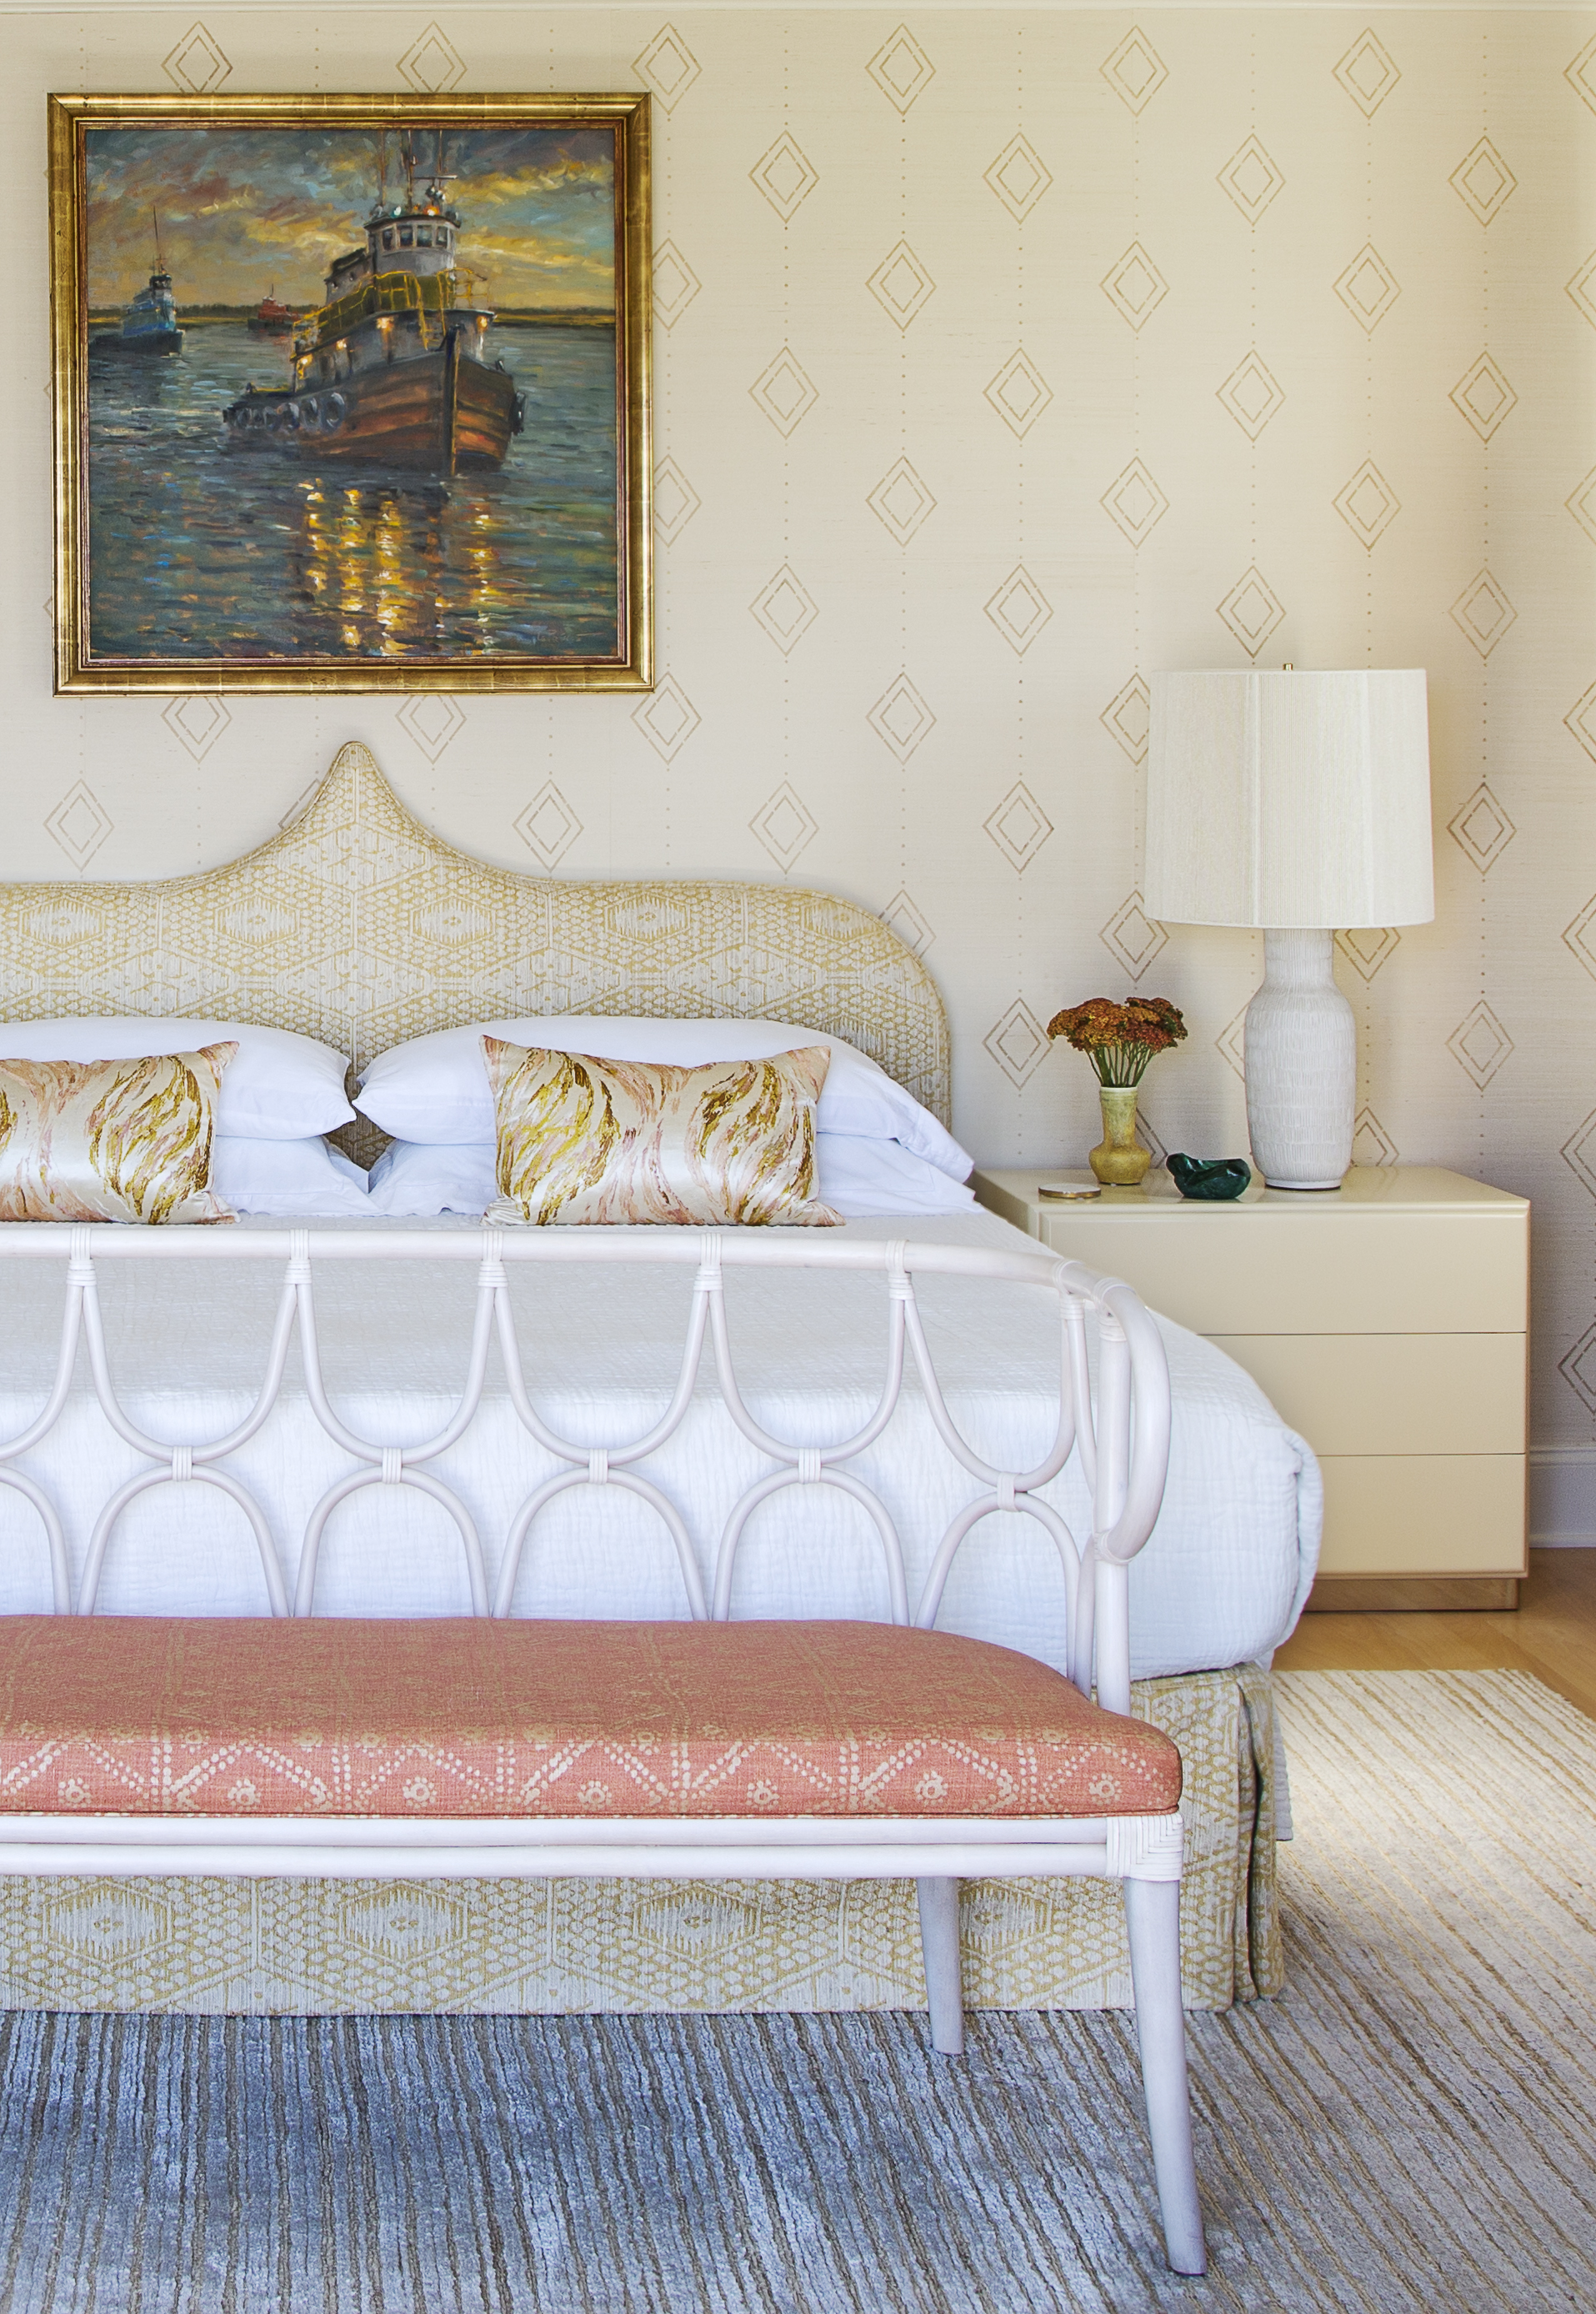 """As the downstairs primary bedroom was converted to a den and home gym, this second-floor suite received full posh treatment, including Allen's gold hand-stenciling on a grasscloth wall covering, a first for Hranowsky. The diamond pattern is echoed in the headboard and bed skirt fabricated in a jacquard silk by Jennifer Shorto and bench found at 1stDibs and recovered in Carolina Irving Textiles """"Zig Zag"""" fabric in """"coral."""""""